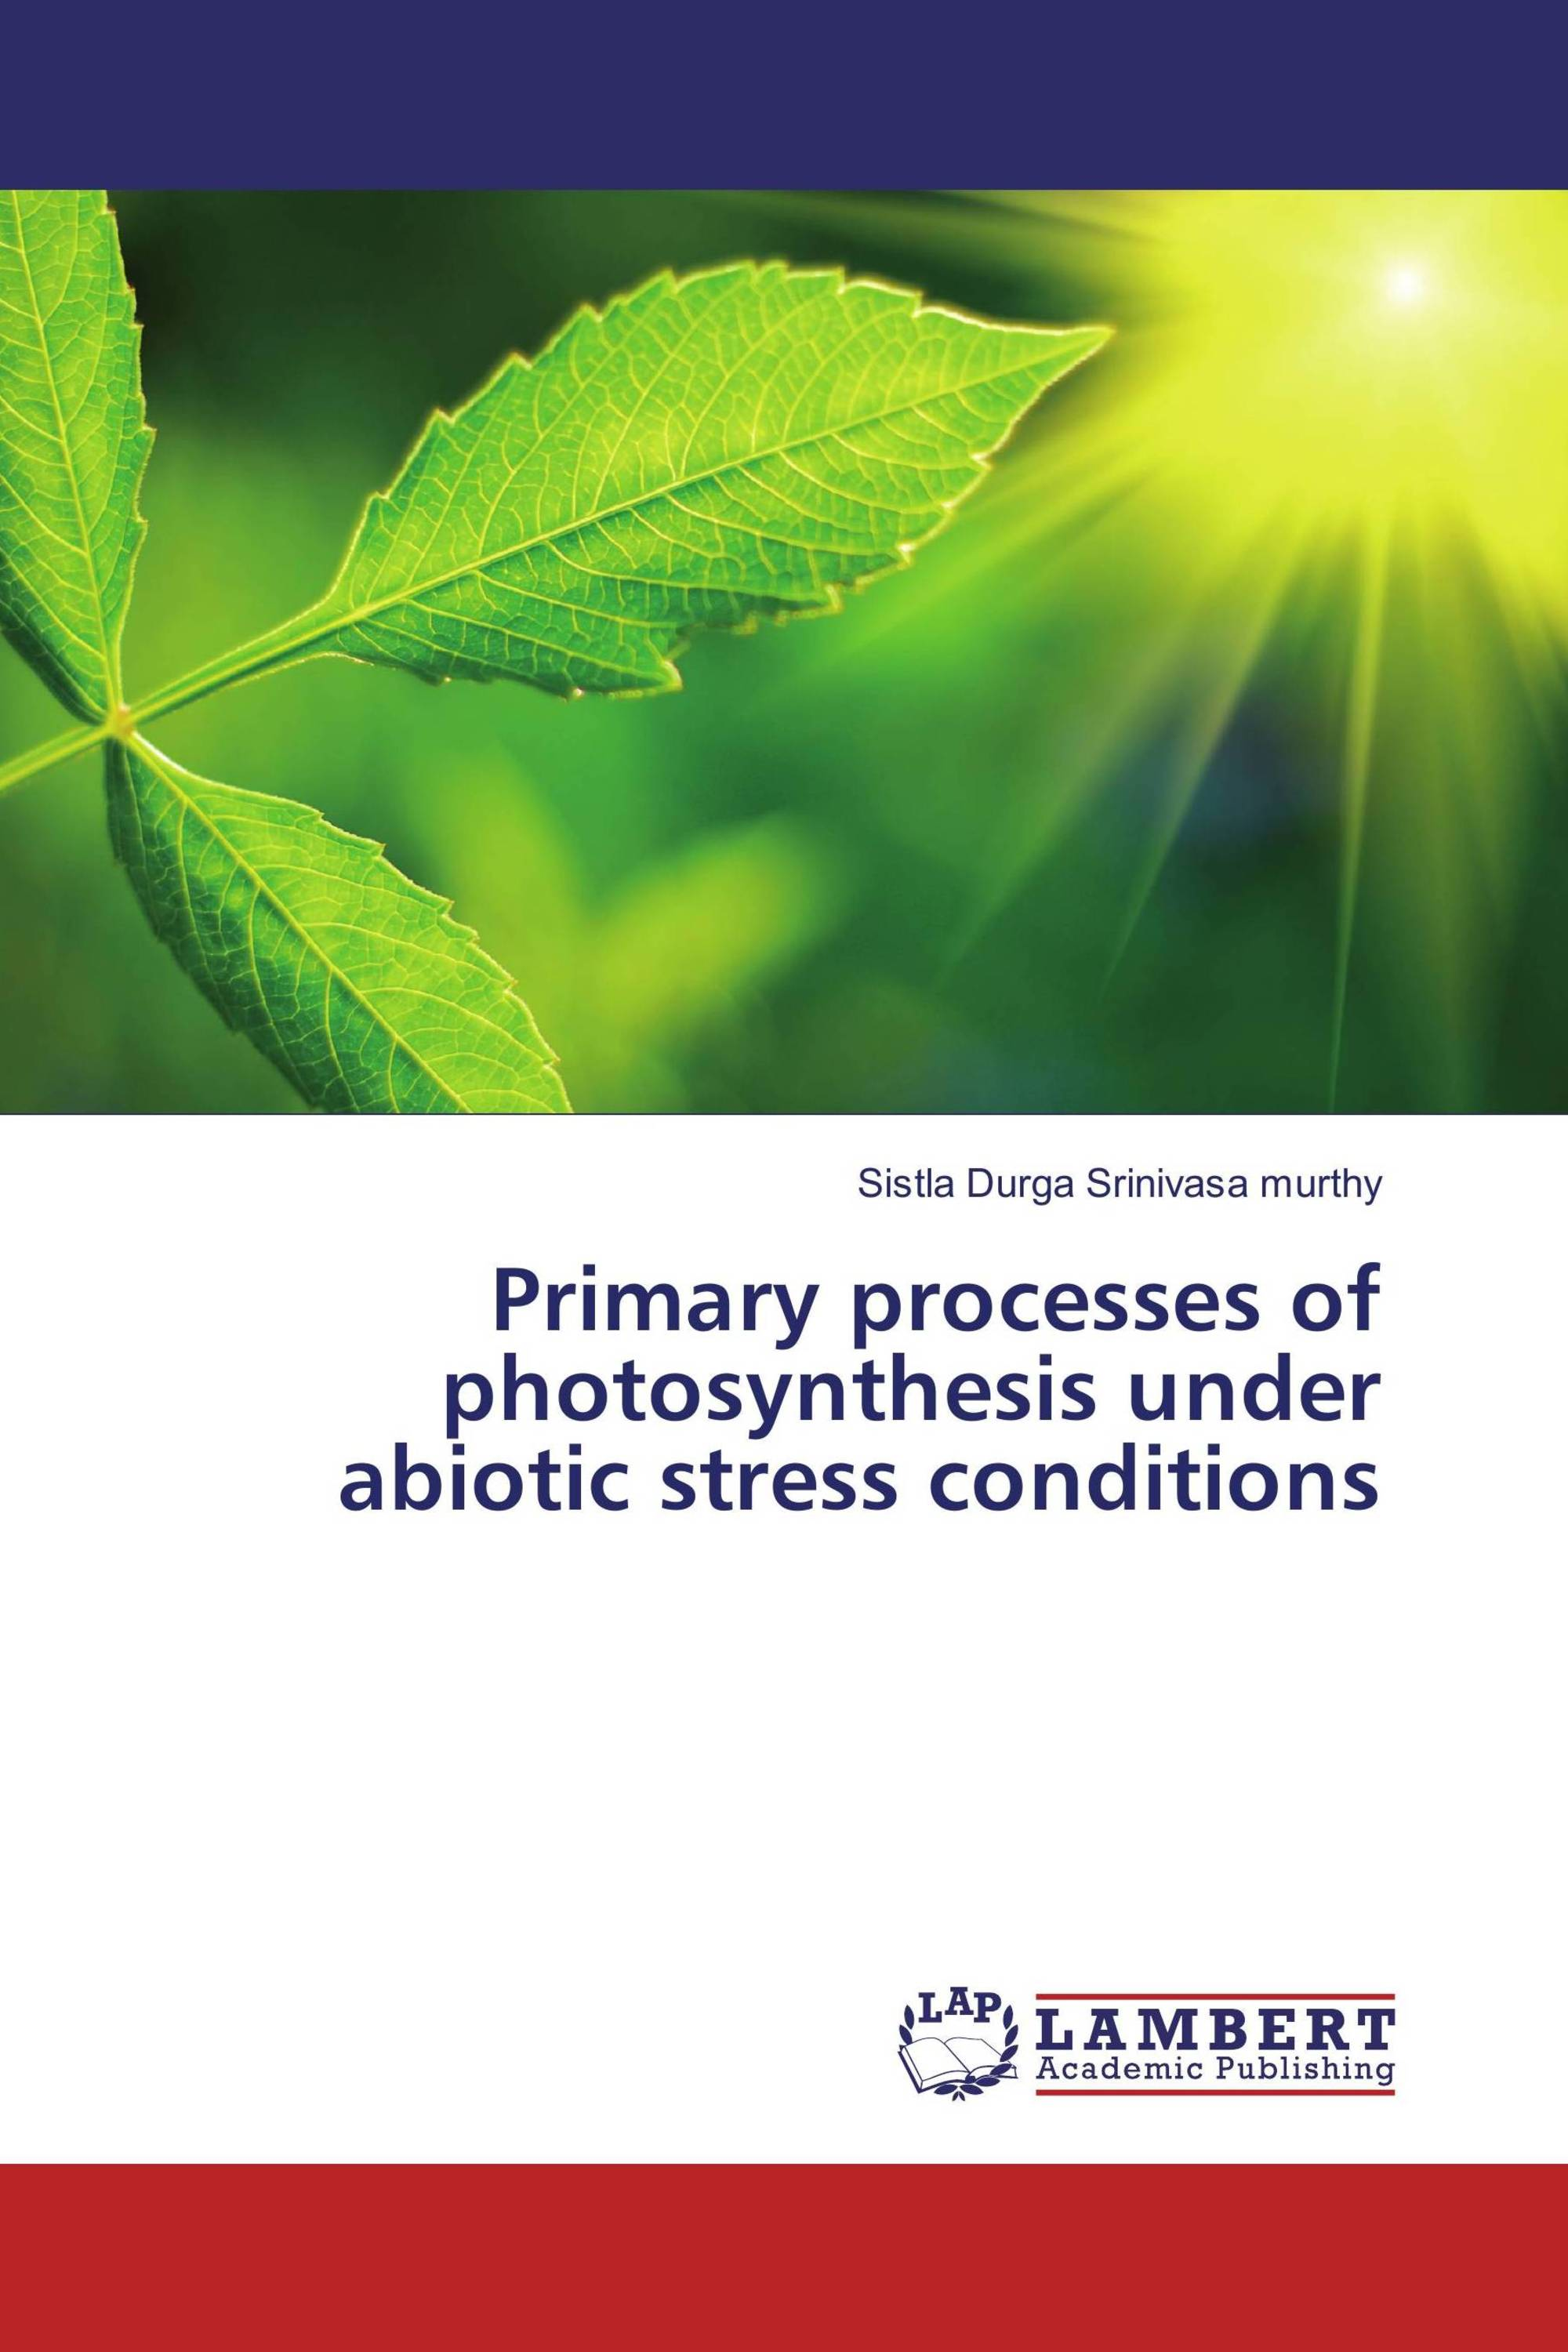 Primary processes of photosynthesis under abiotic stress conditions